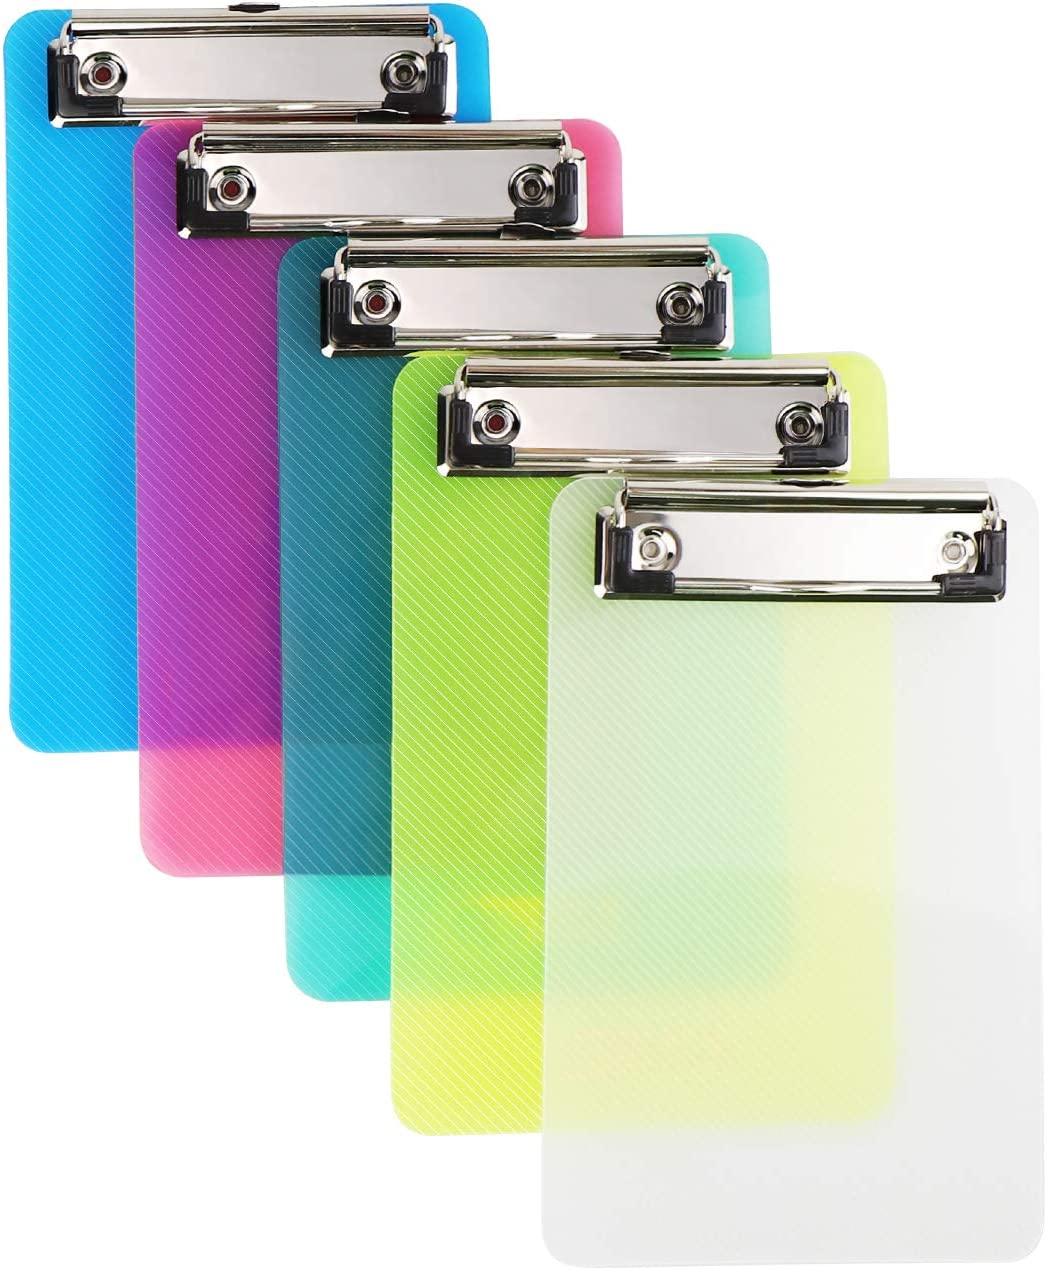 Plastic Colorful Clipboard,Pretty Cute Clipboard Memo Size Pocket Clip Boards 5x7 Inch A6 Clipboards for classrooms, Offices, Restaurants, Doctor Offices - Set of 5